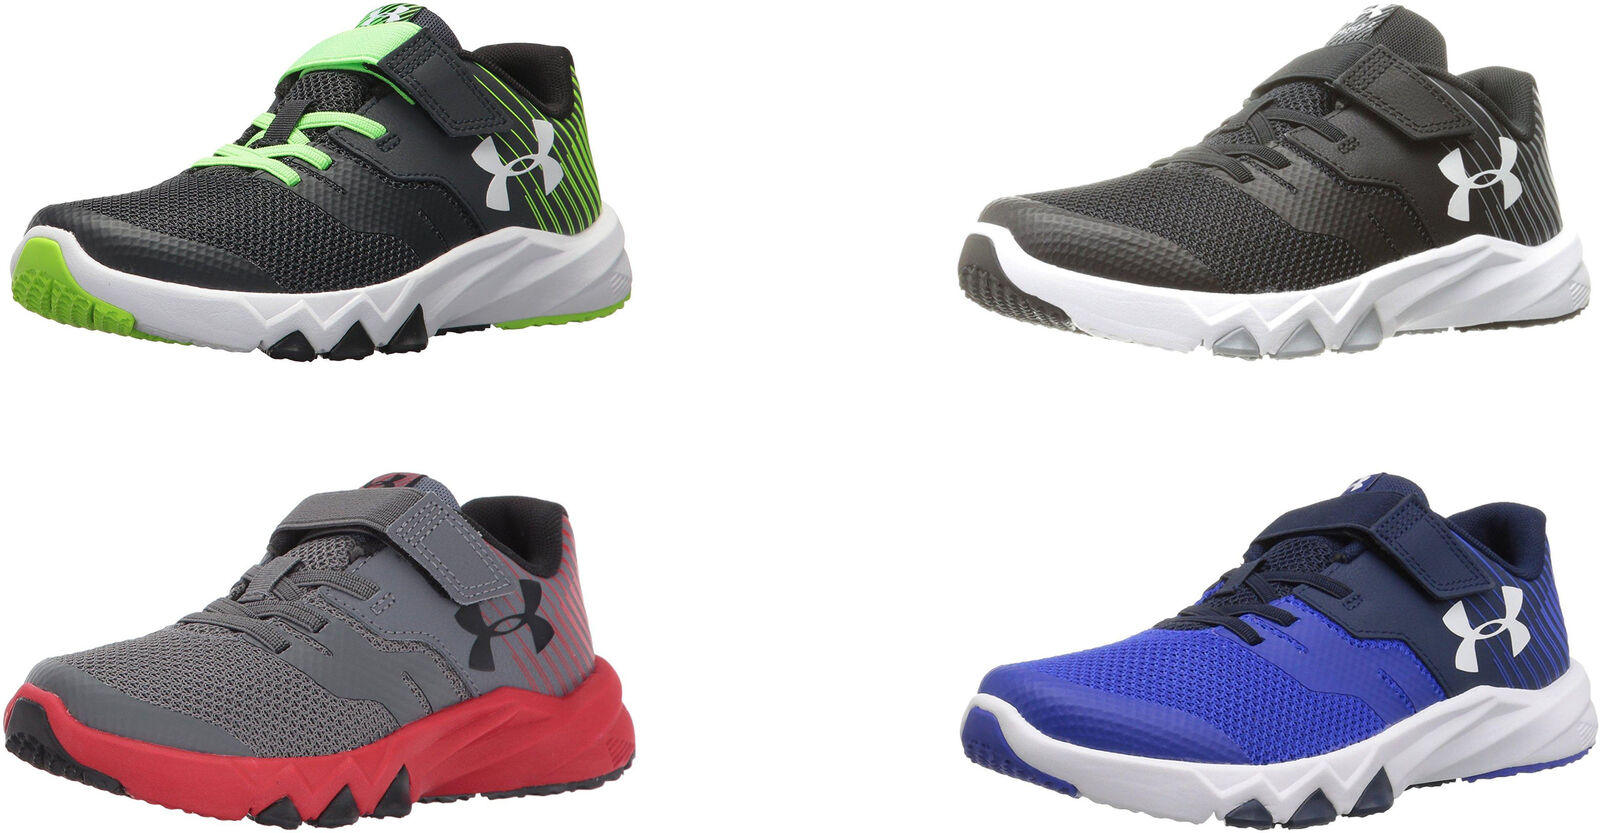 a438506f6cbd0 Details about Under Armour Boys Pre School Primed 2 Adjustable Closure  Running Shoes, 4 Colors